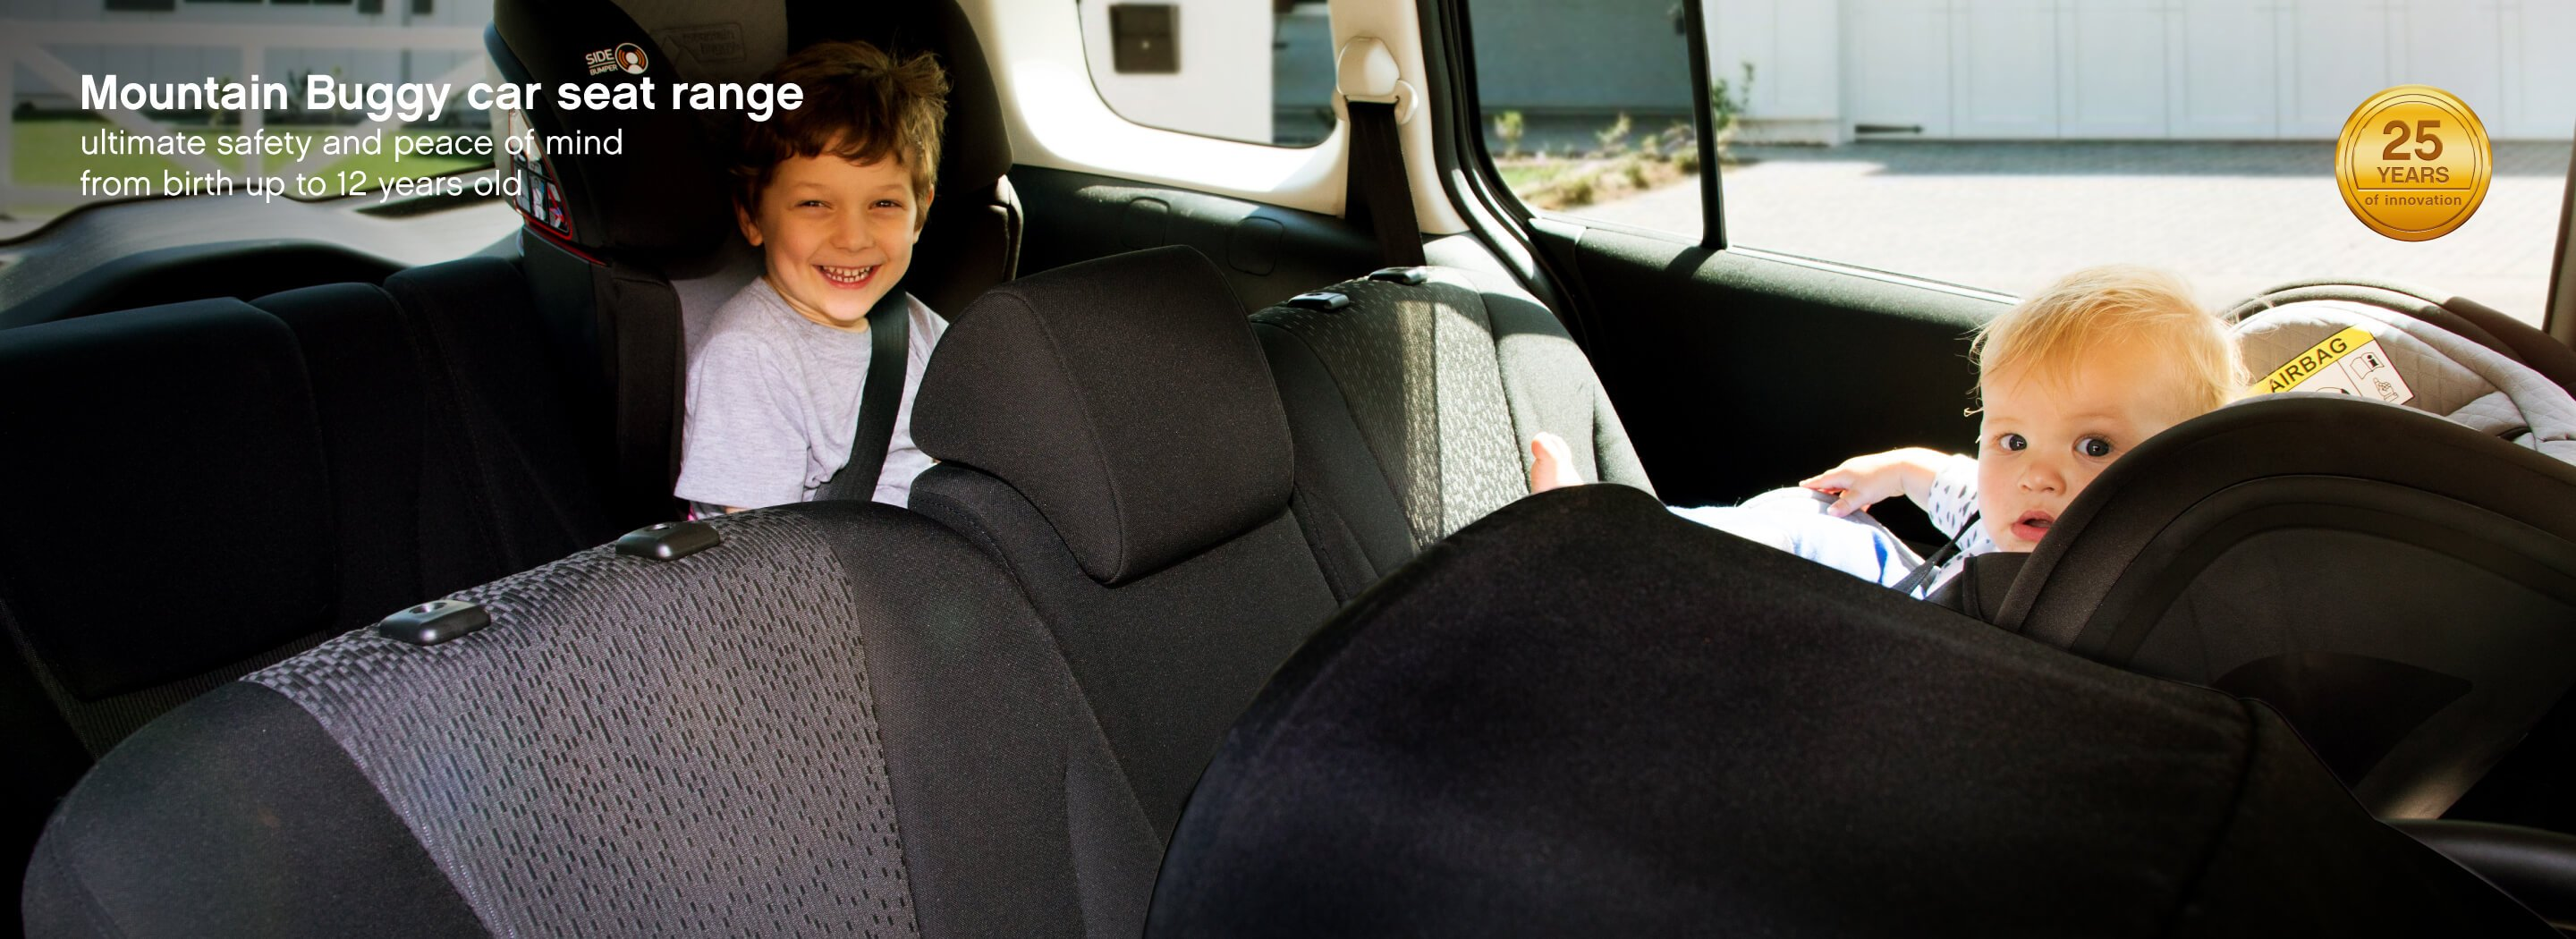 https://cdn.accentuate.io/79395258461/12853846868061/MB_car_seat_range_collection-banner_2880x1050px_ENG-v1619835256181.jpg?2880x1050